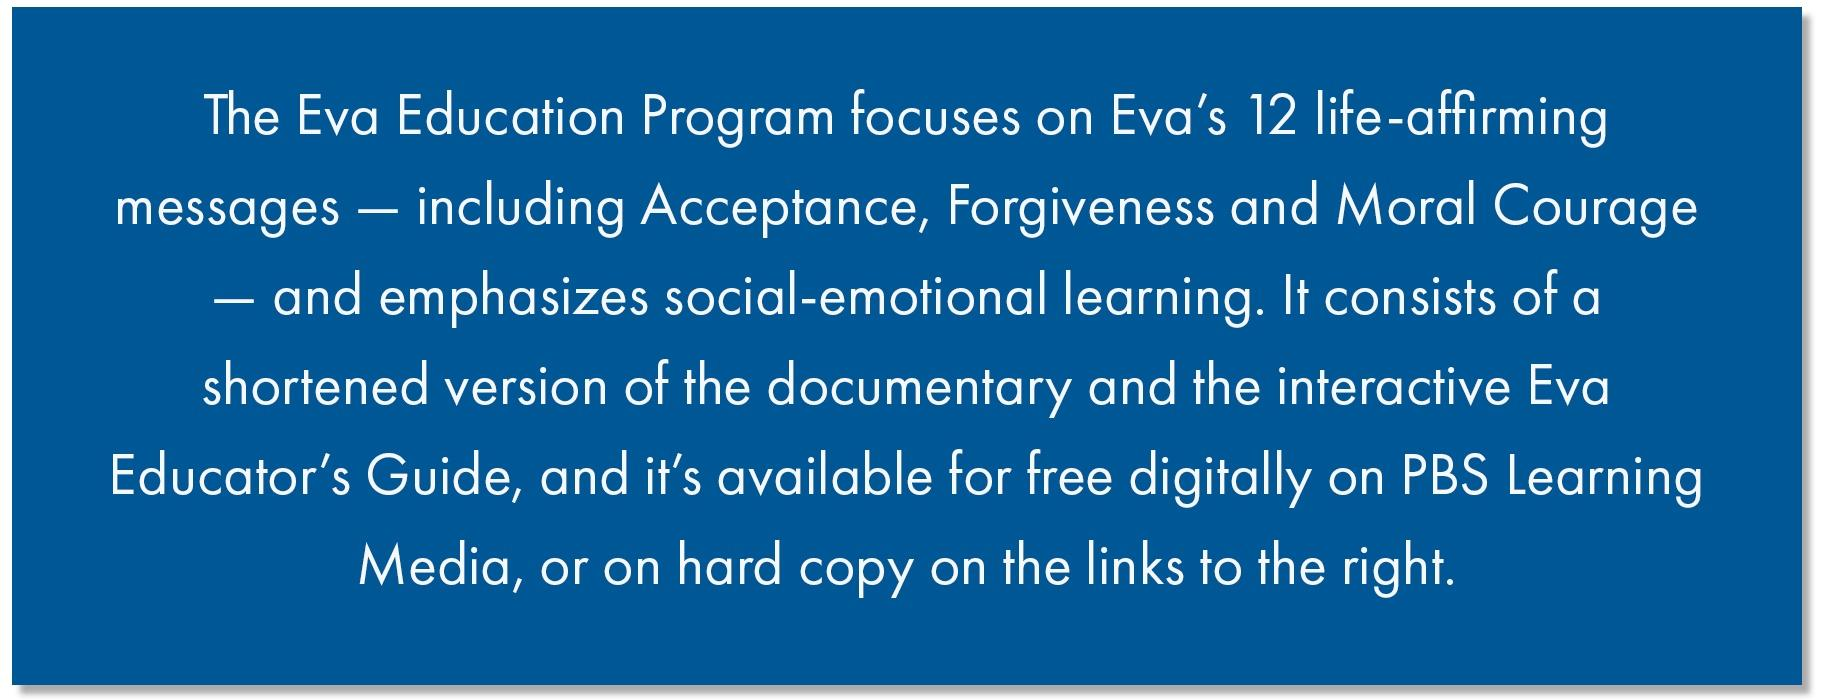 The Eva Education Program focuses on Eva's 12 life-affirming messages — including Acceptance, Forgiveness and Moral Courage — and emphasizes social-emotional learning. It consists of a shortened version of the documentary and the interactive Eva Educator's Guide, and it's available for free digitally on PBS Learning Media, or on hard copy on the links to the right.